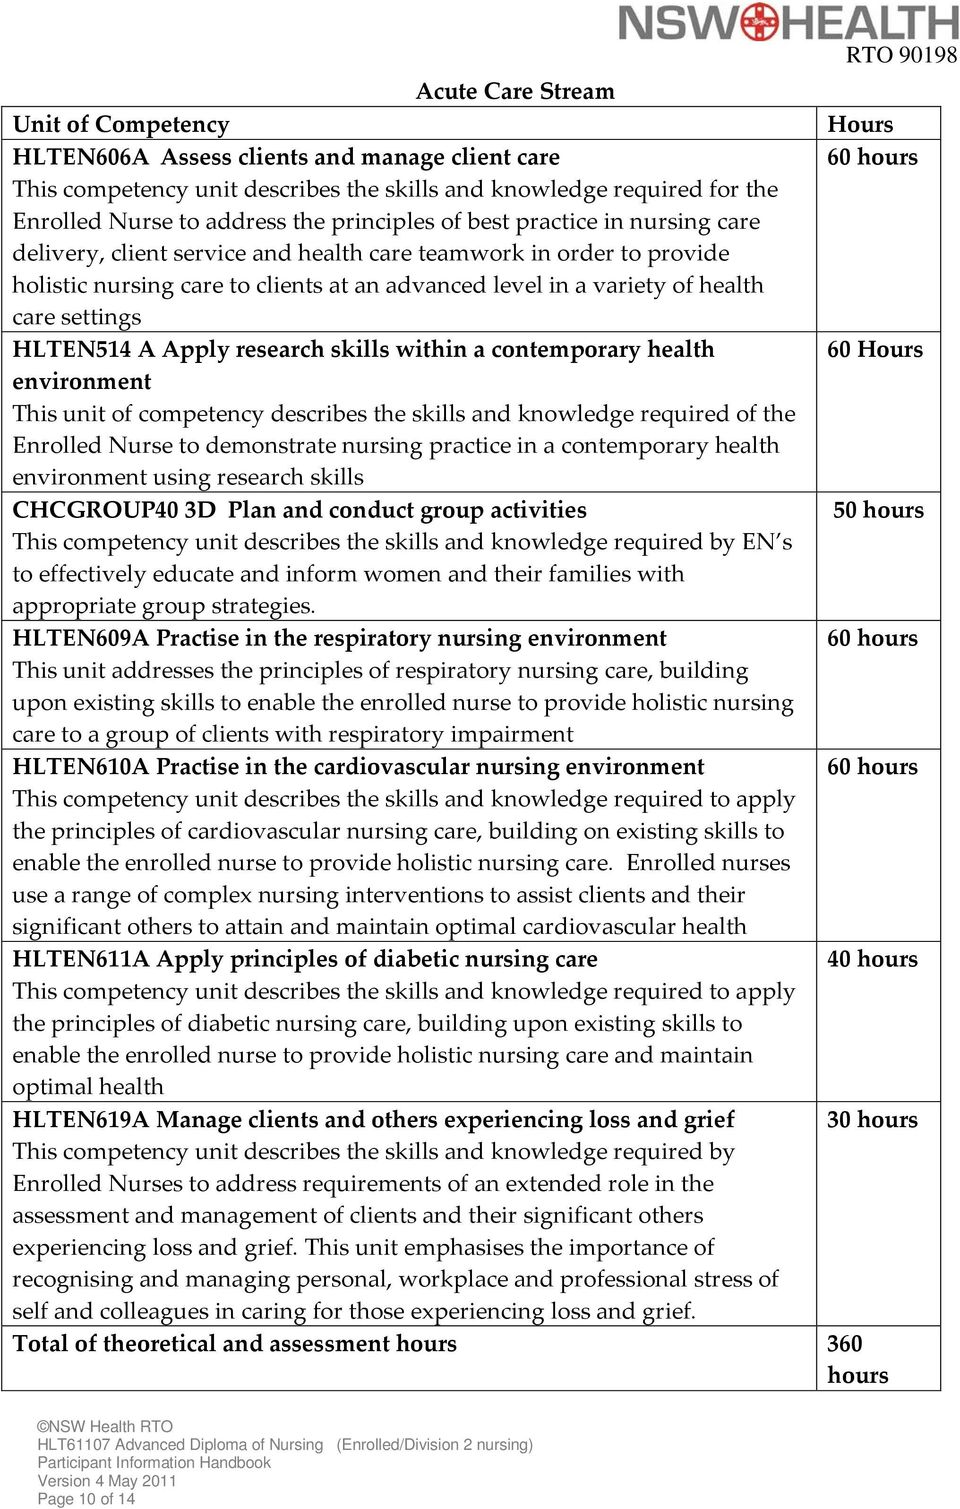 settings HLTEN514 A Apply research skills within a contemporary health 60 Hours environment This unit of competency describes the skills and knowledge required of the Enrolled Nurse to demonstrate